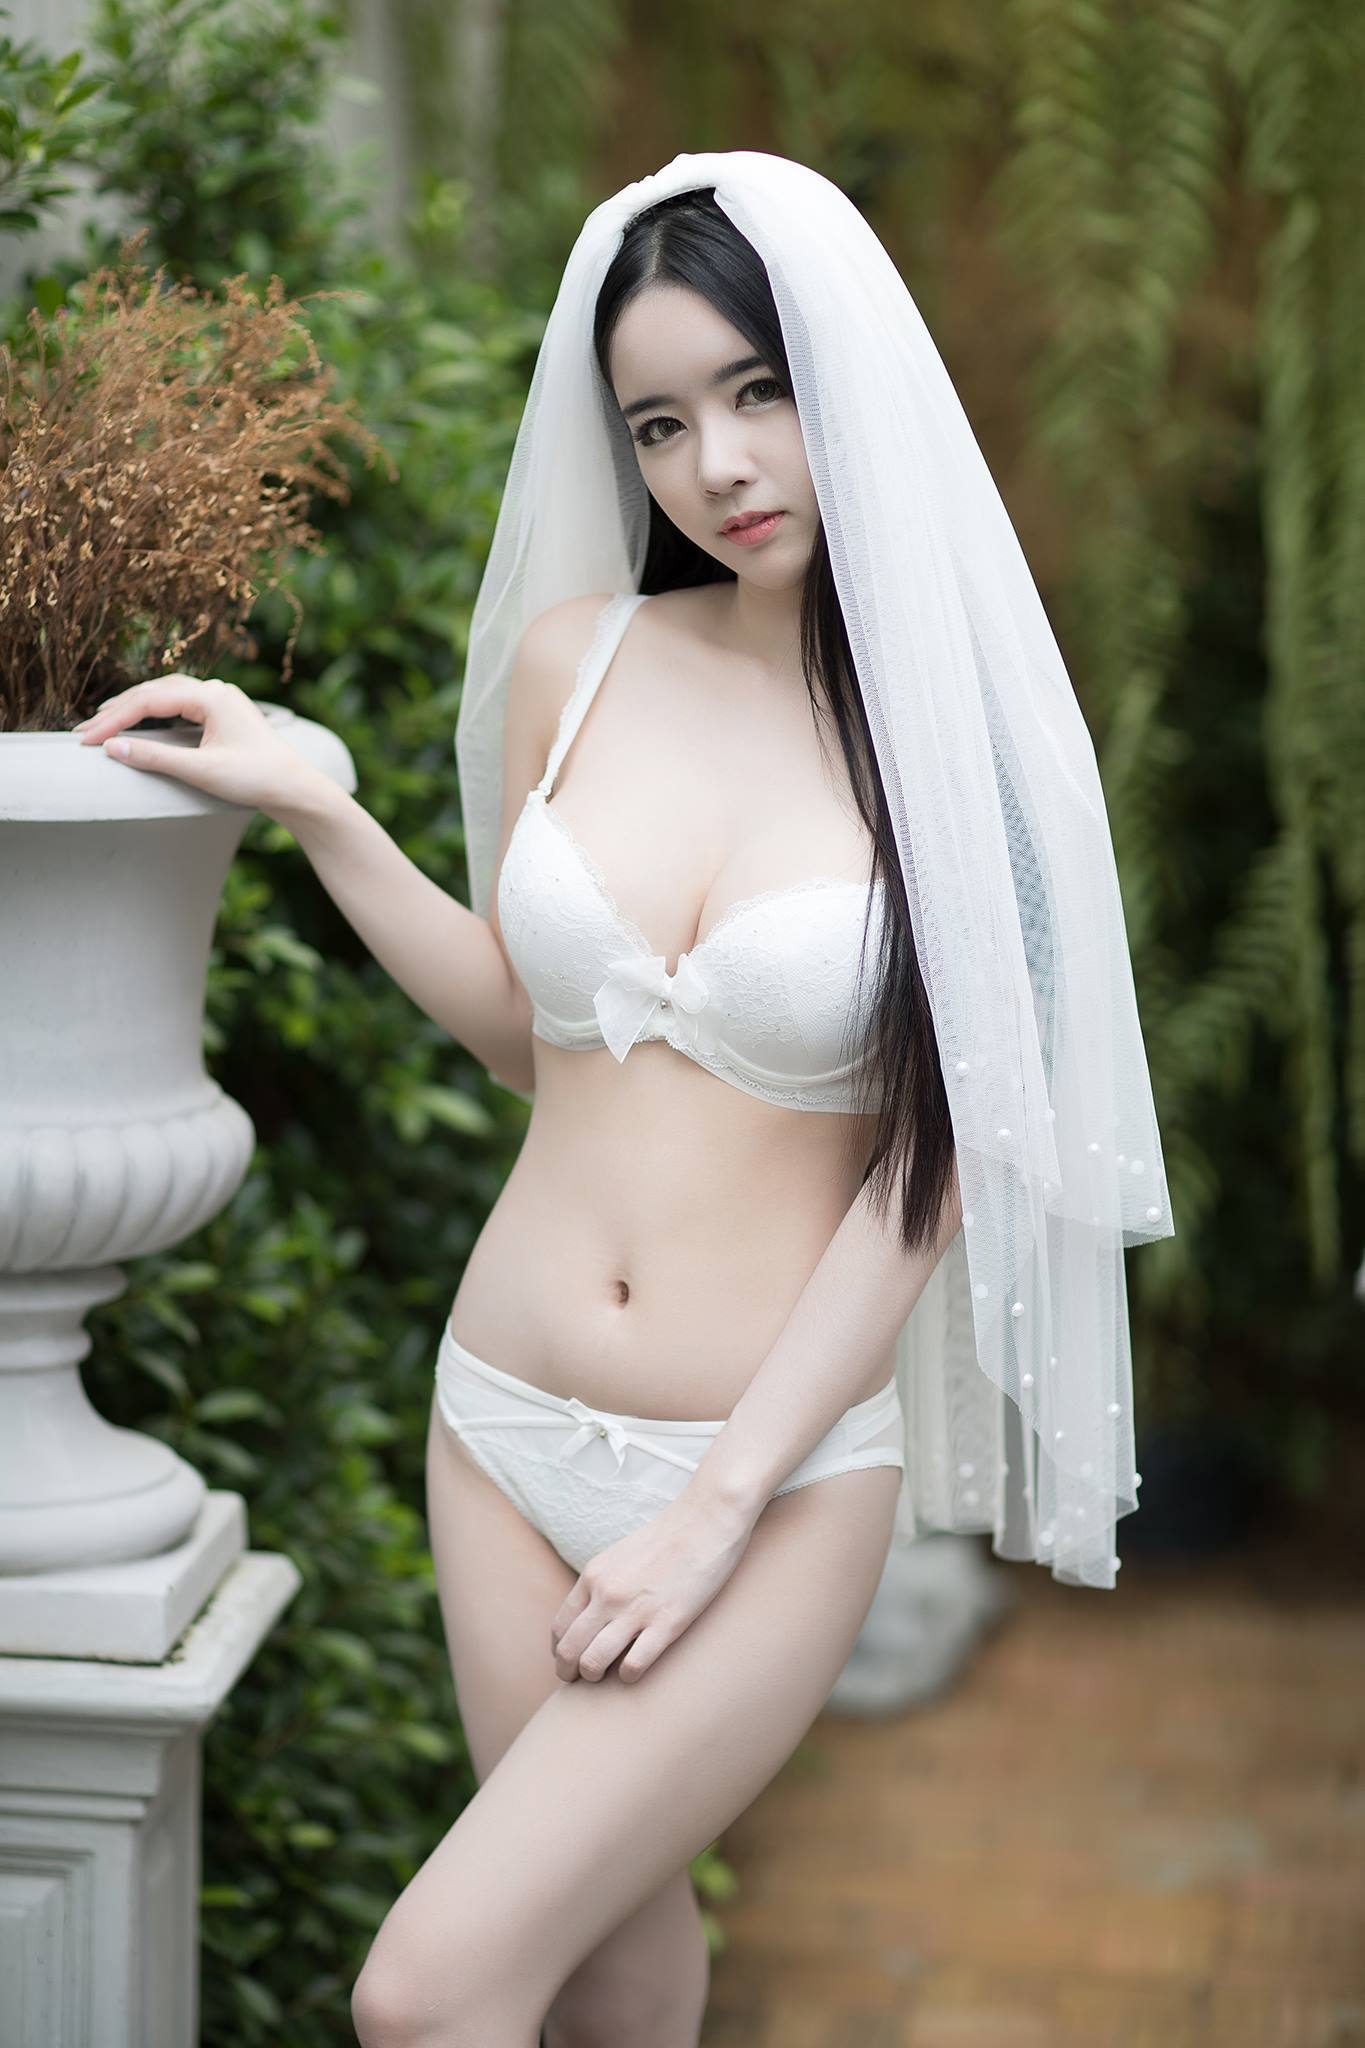 pure & hot lingerie Asian girl